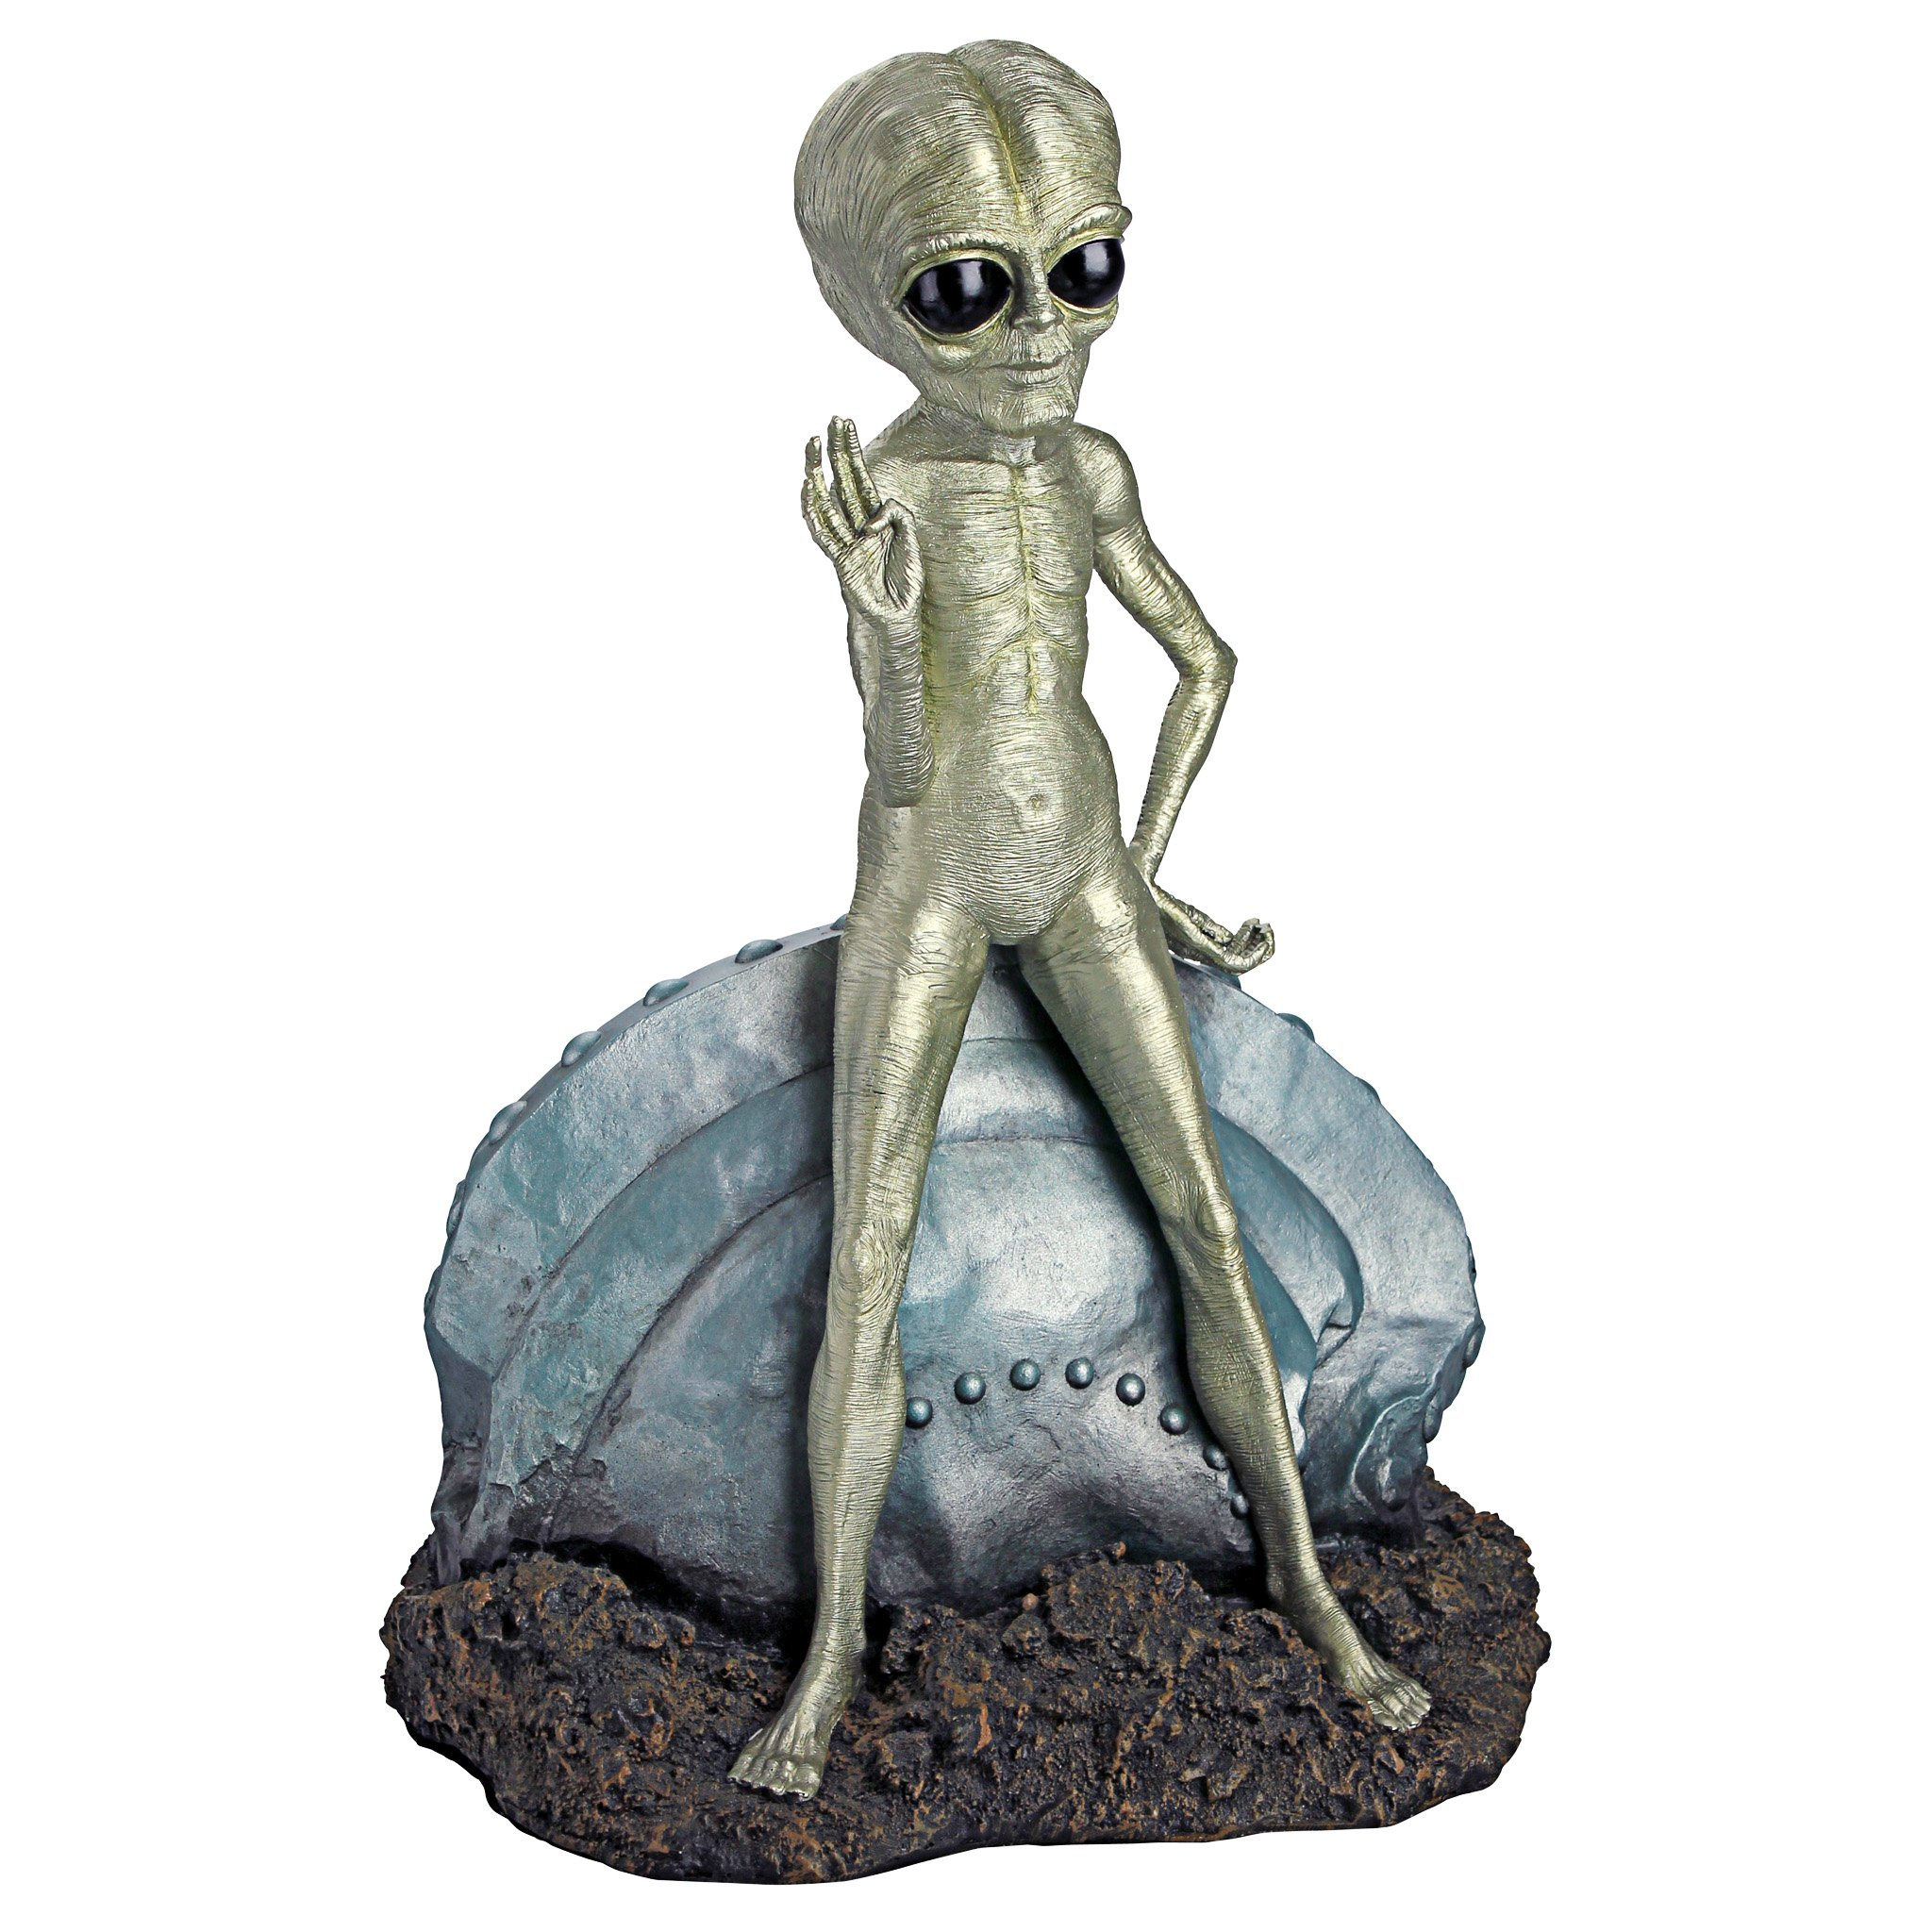 Design Toscano Roswell, the Alien Sculpture by Design Toscano